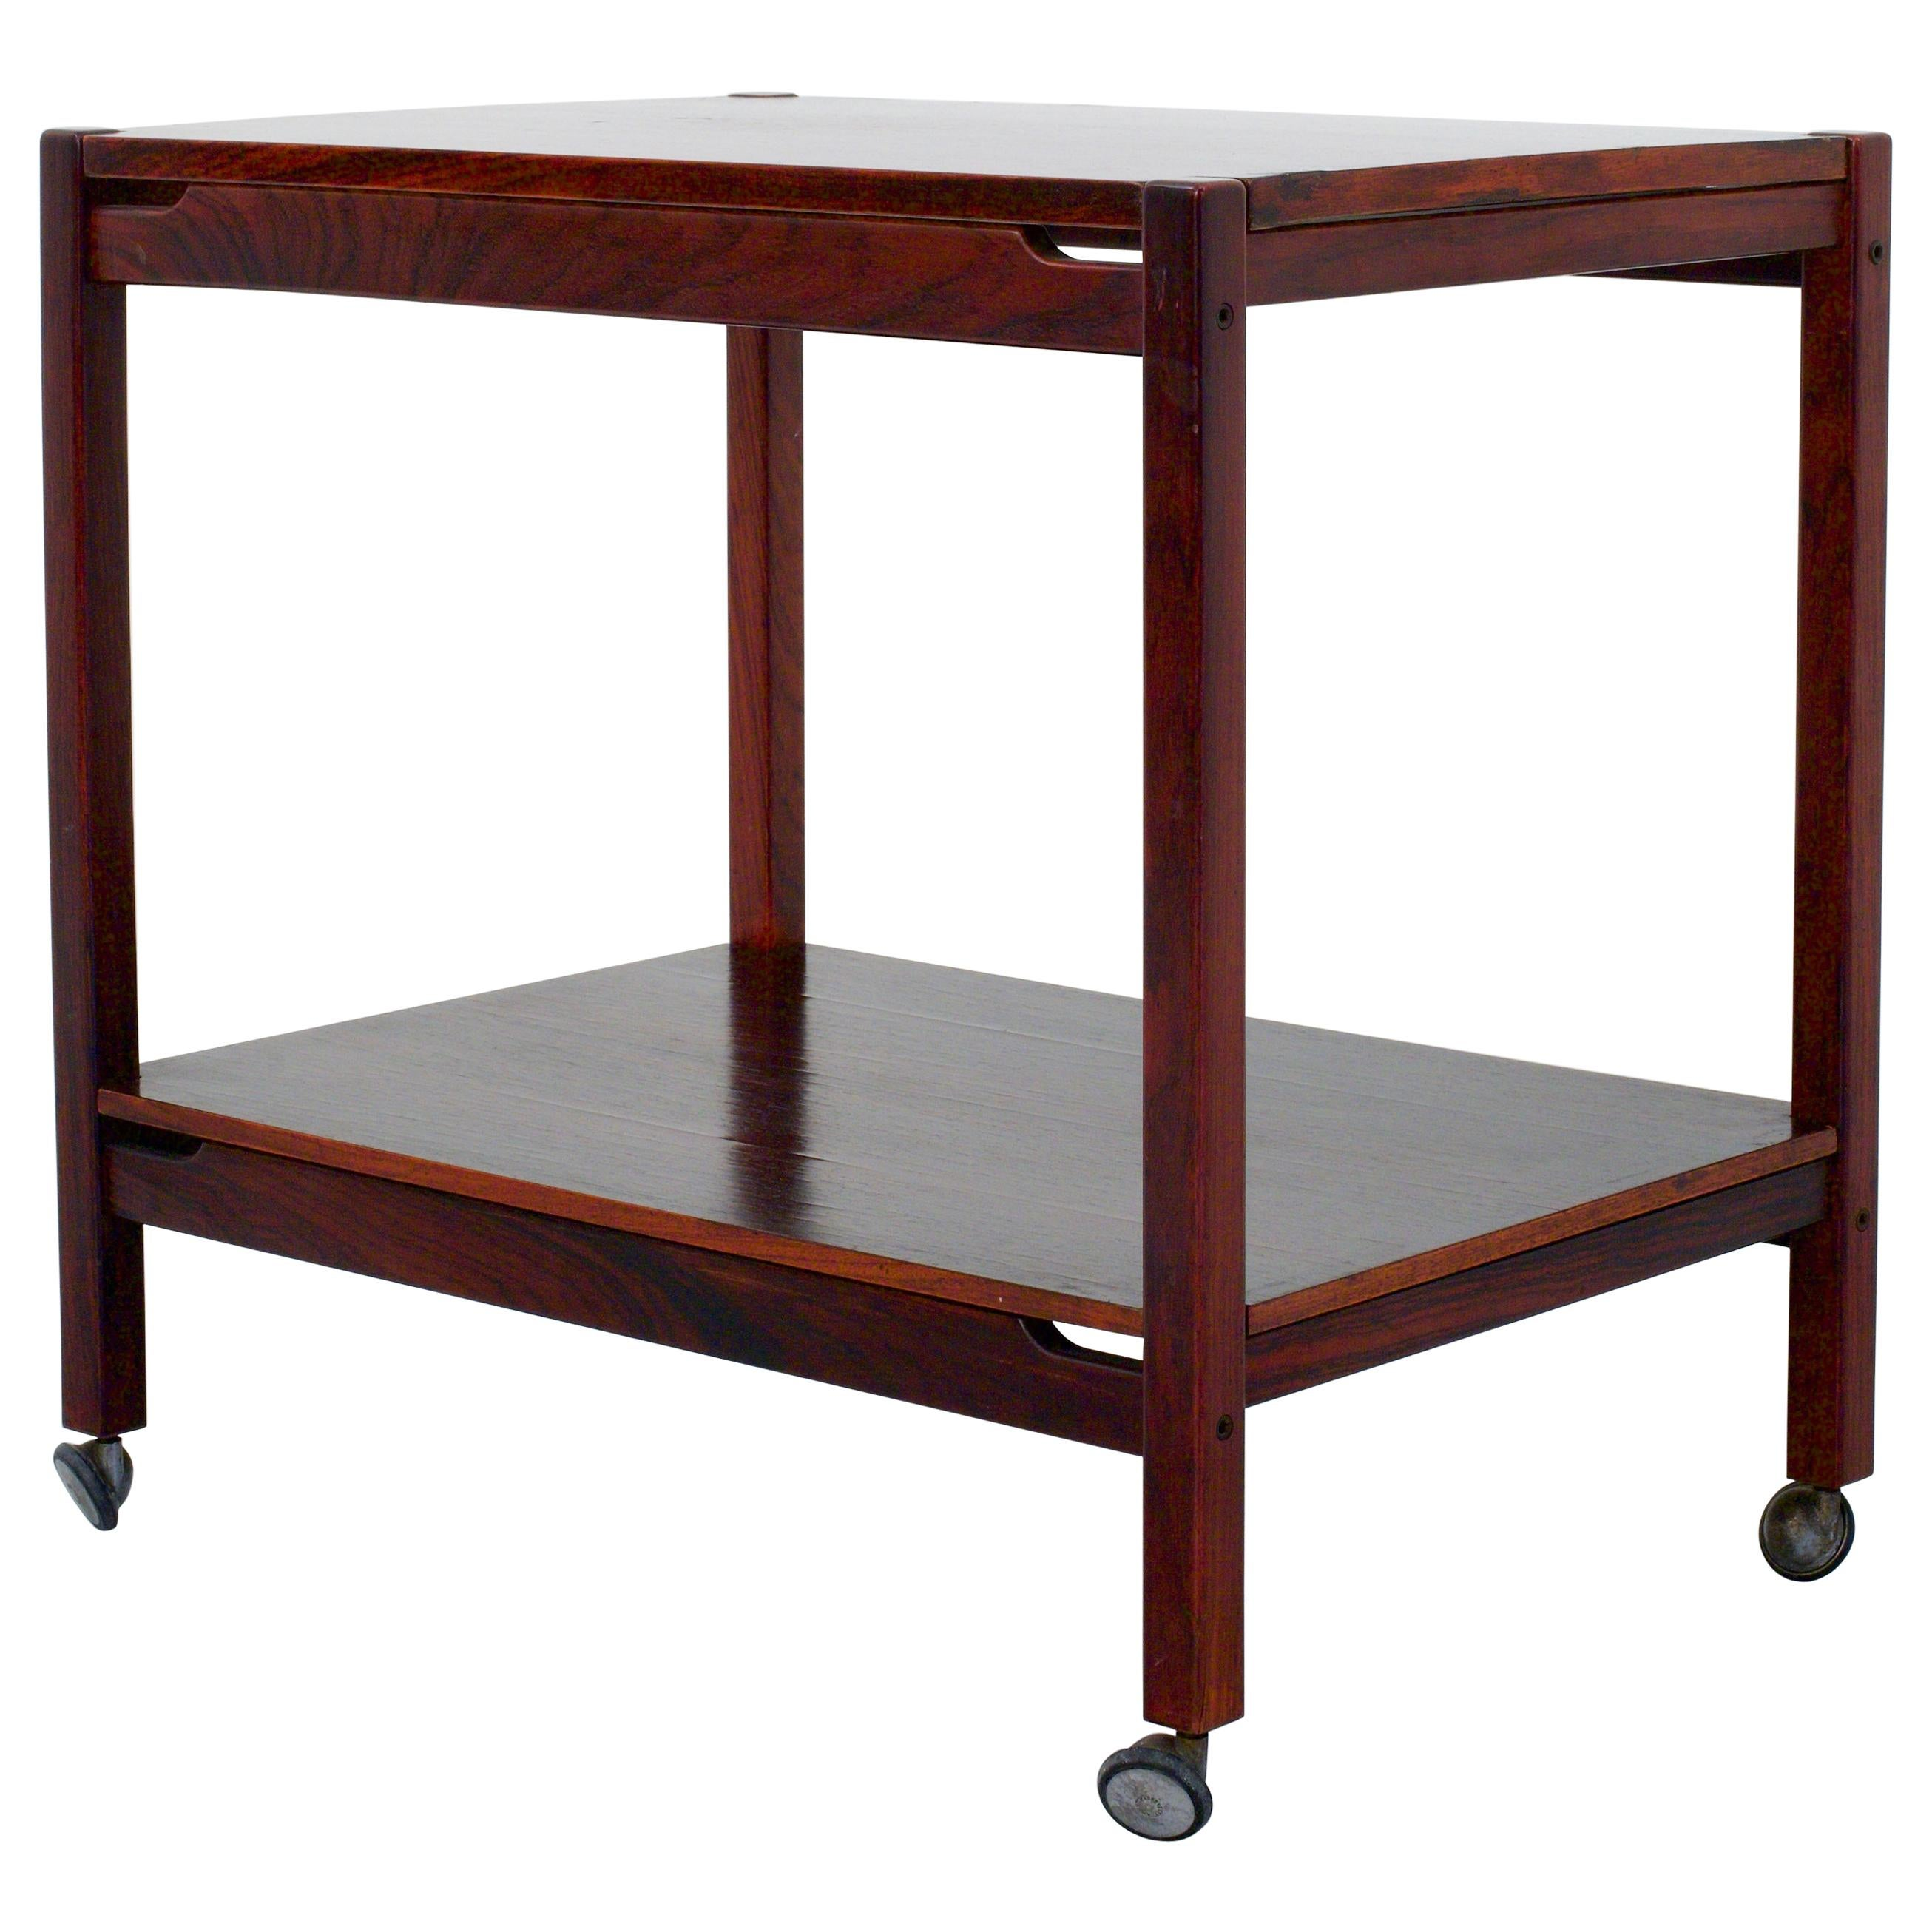 Bar Cart or Serving Trolley in Mahogany and Metal, Italy, 1960s